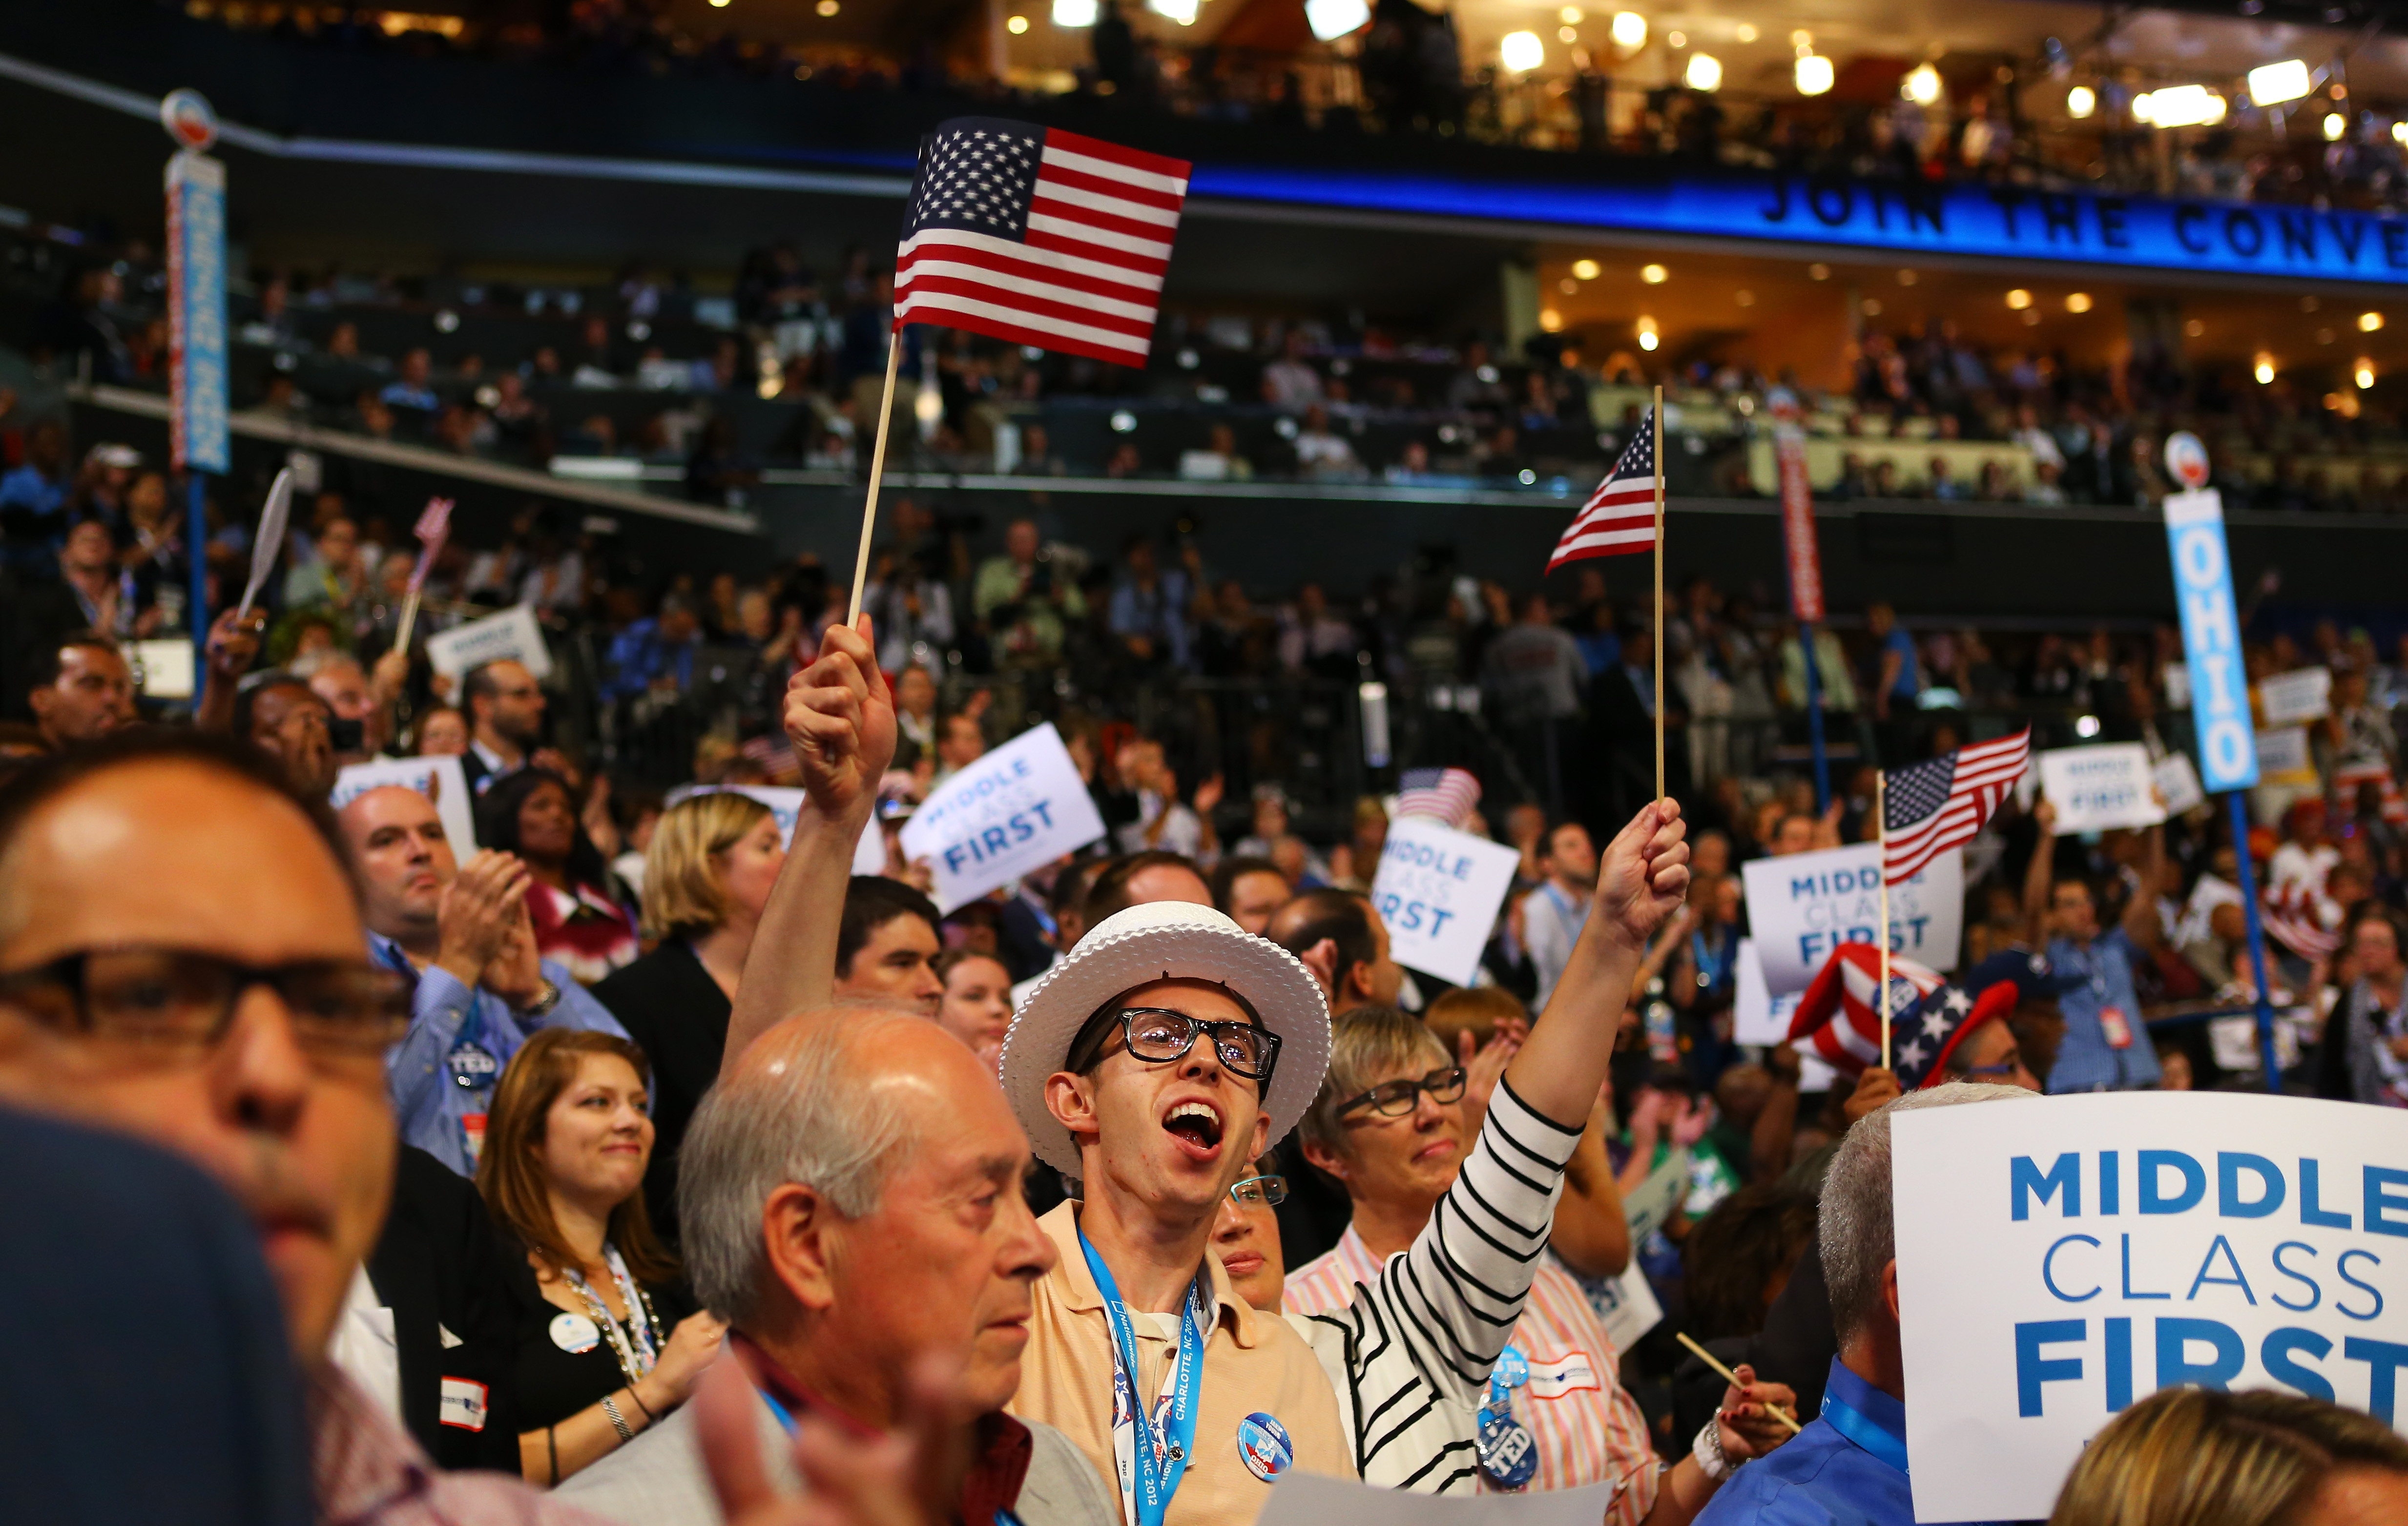 A cheering crowd watches President Bill Clinton address day two of the 2012 Democratic National Convention in Charlotte, North Carolina. (Photo by Joe Raedle/Getty Images)